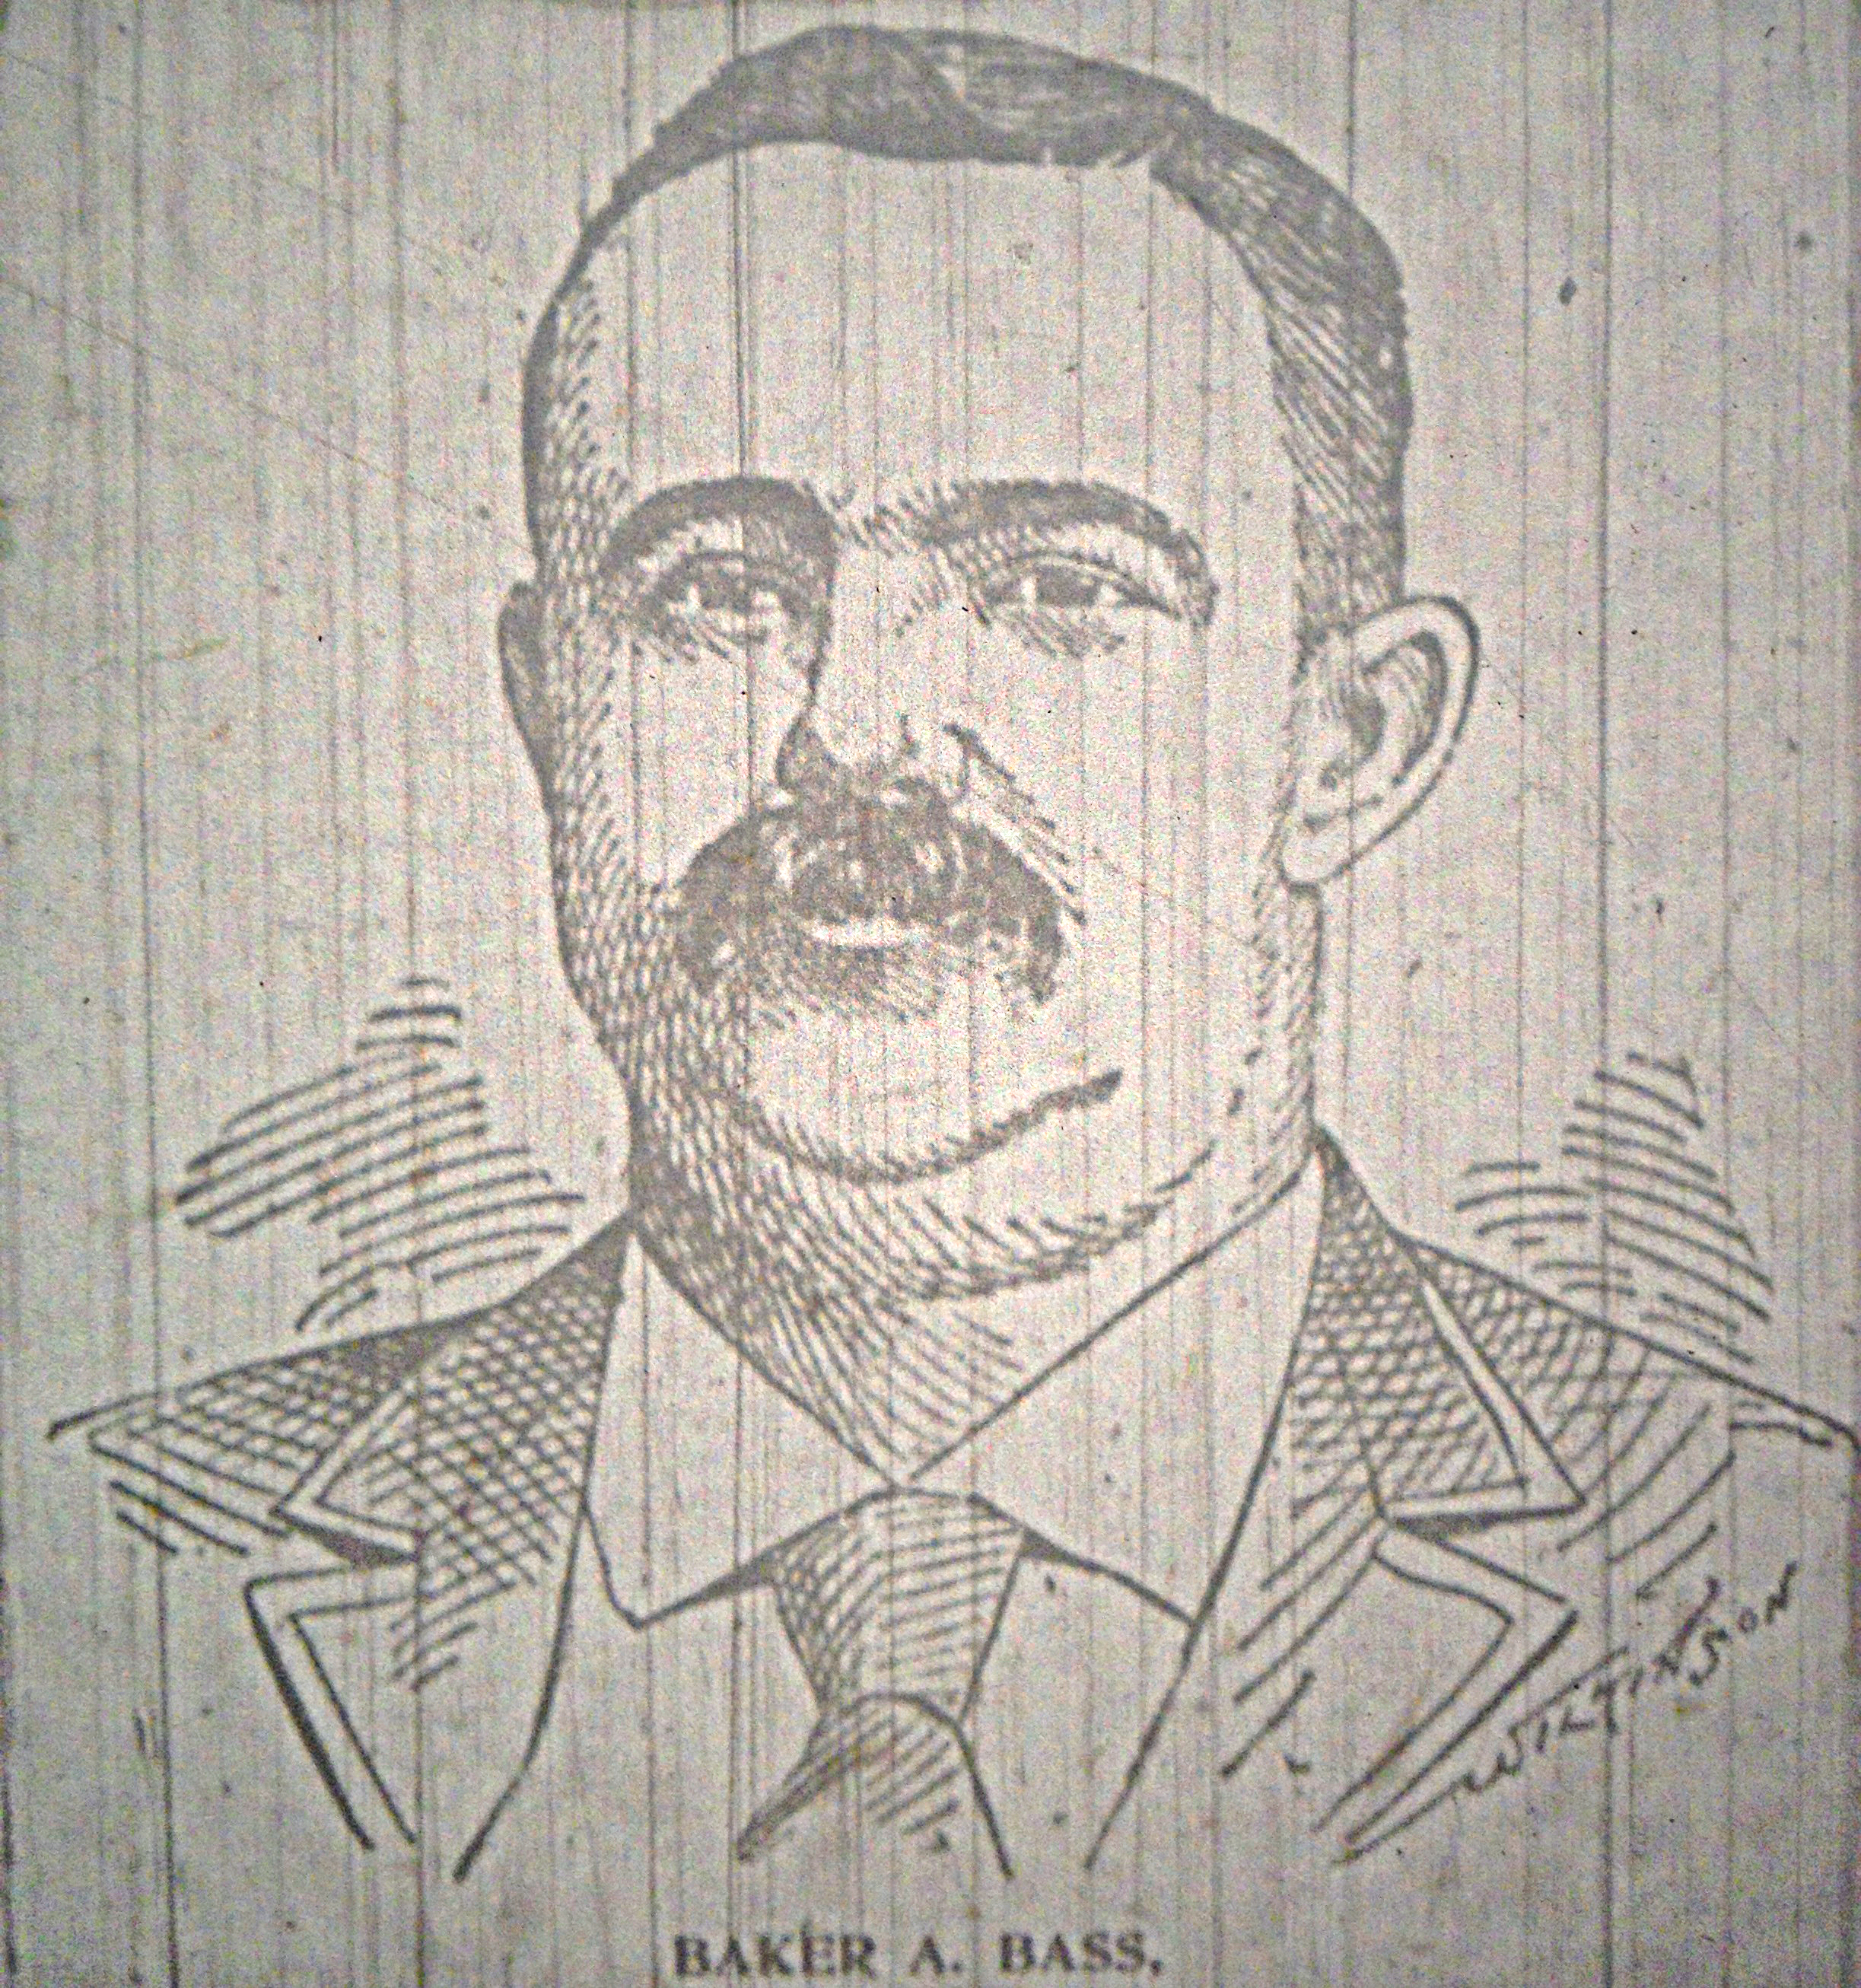 Baker A. Bass Who Was Gunned Down on an Atlanta street in 1895 - He ran a fence for stolen goods in the city - His murder revealed police corruption - Atlanta Constitution Rendering from September 1st, 1895